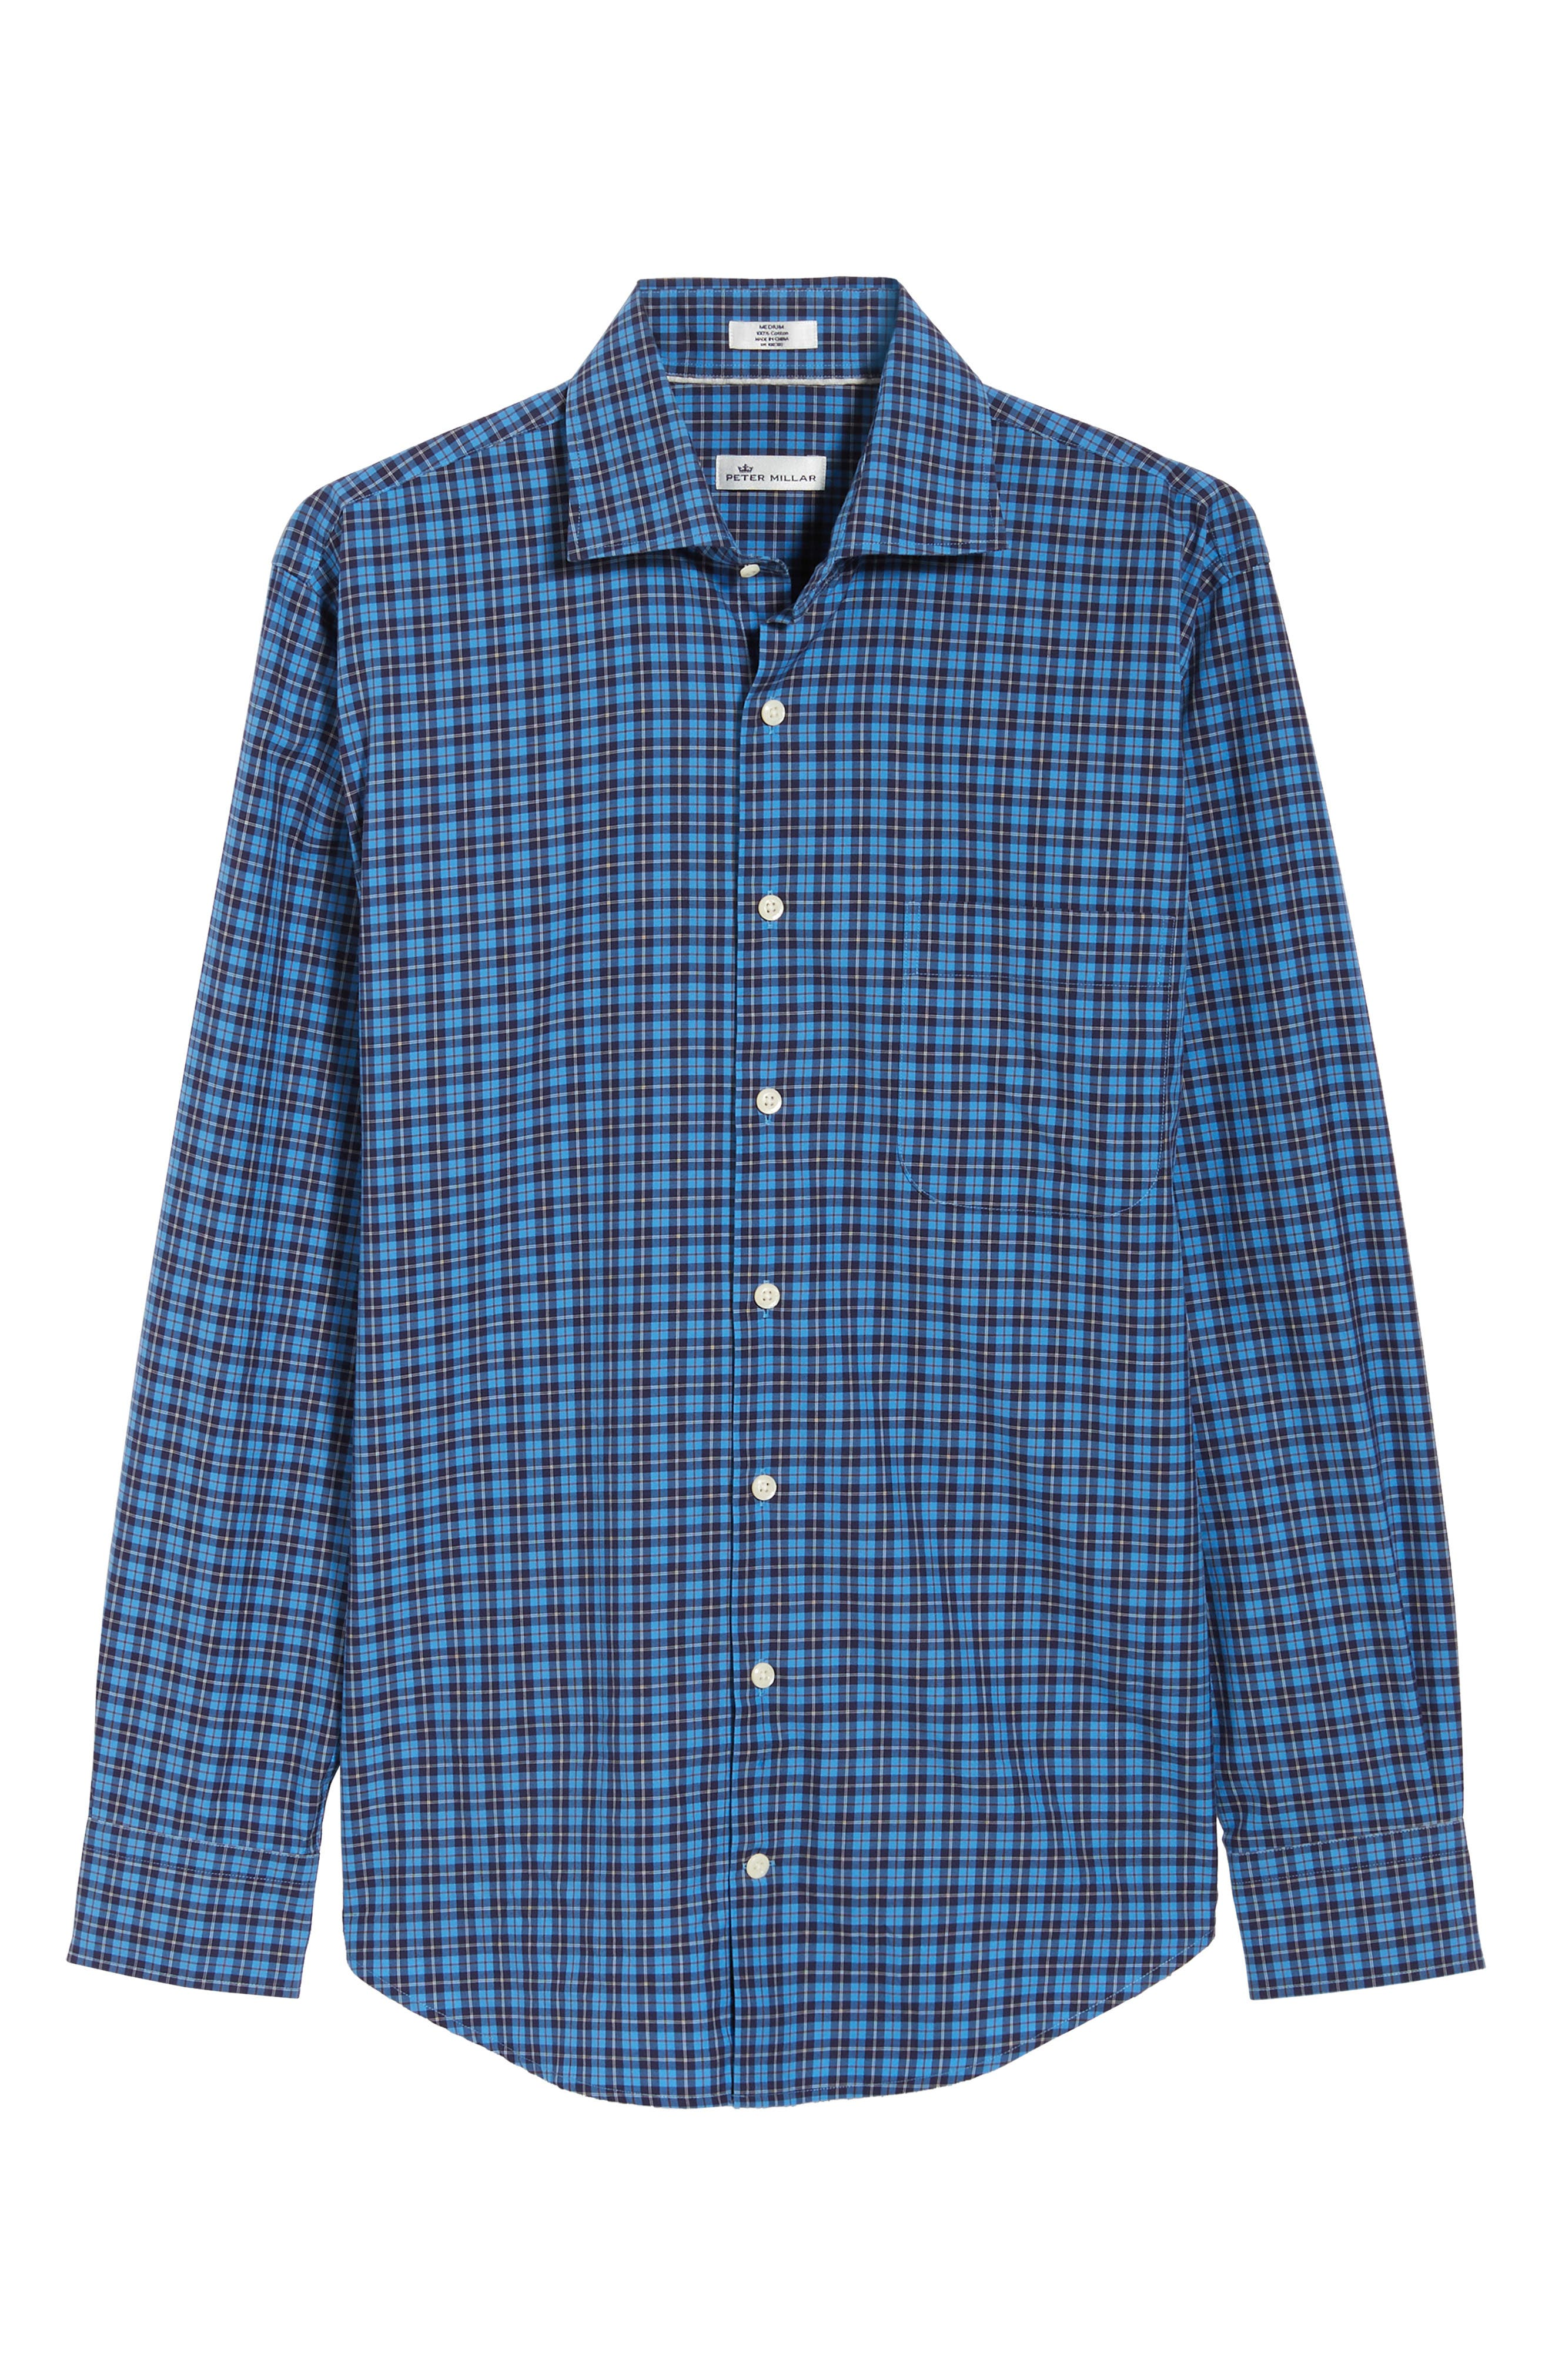 Northgate Plaid Sport Shirt,                             Alternate thumbnail 5, color,                             MARINA BLUE